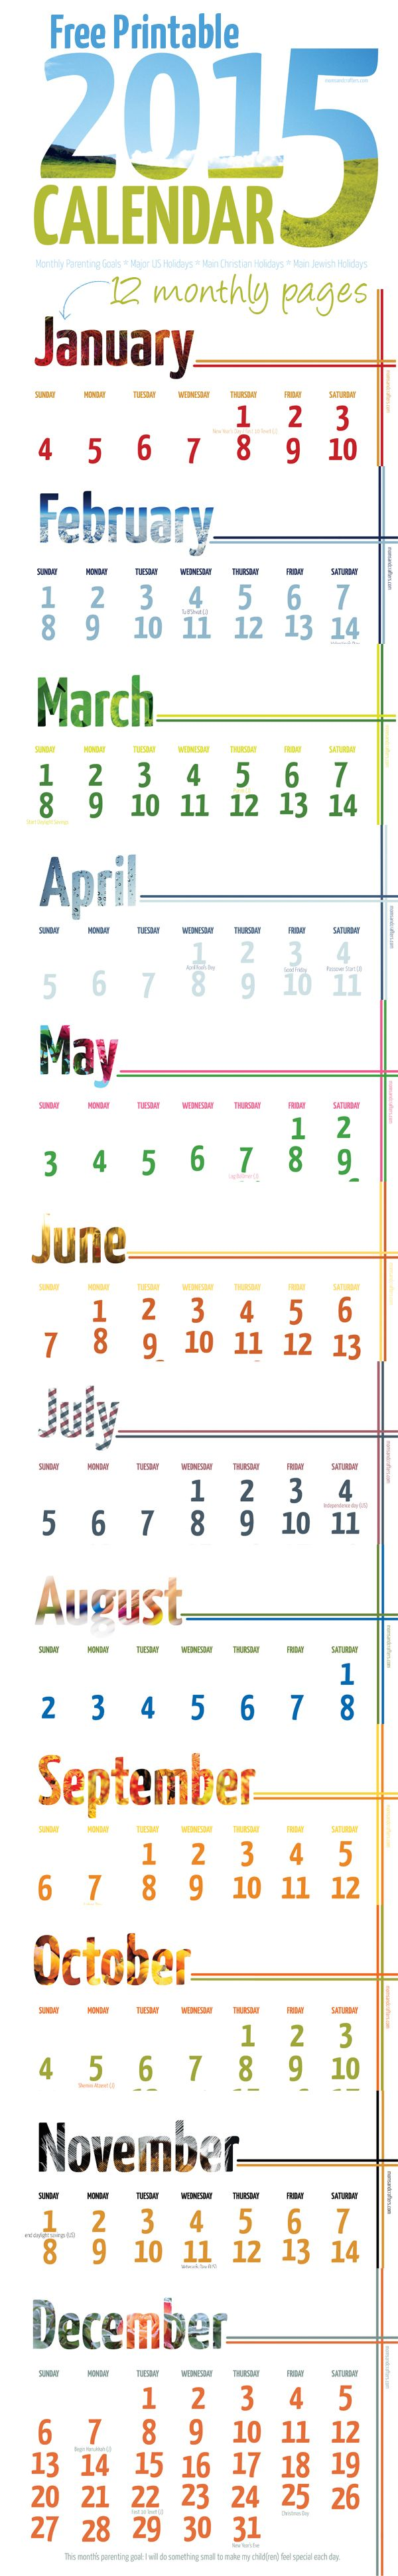 Free printable 2015 calendar complete with parenting goals and objectives!! Fun and smart and wallet-friendly as it uses less ink to print because of the white background. Monthly wall calendar download!